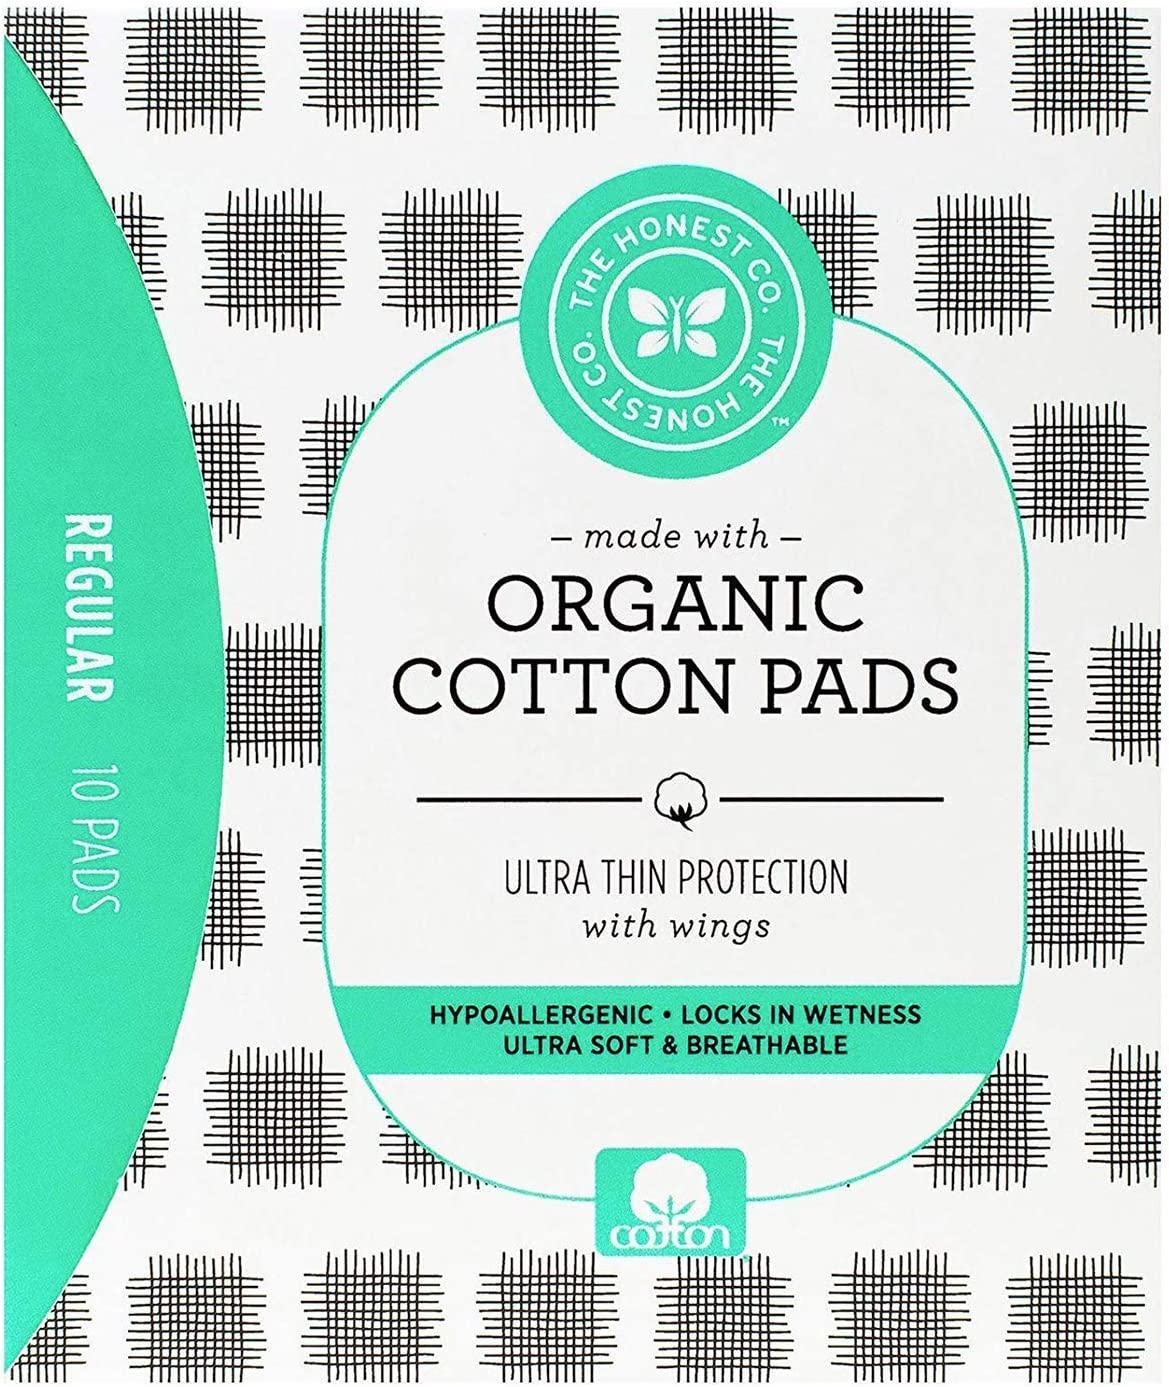 The Honest Company Organic Cotton Pads | Regular | Hypoallergenic Pads with Wings | Ultra-Soft & Ultra-Thin | PH Compatible | Breathable | Plant-Based with Organic Cotton |10 Count